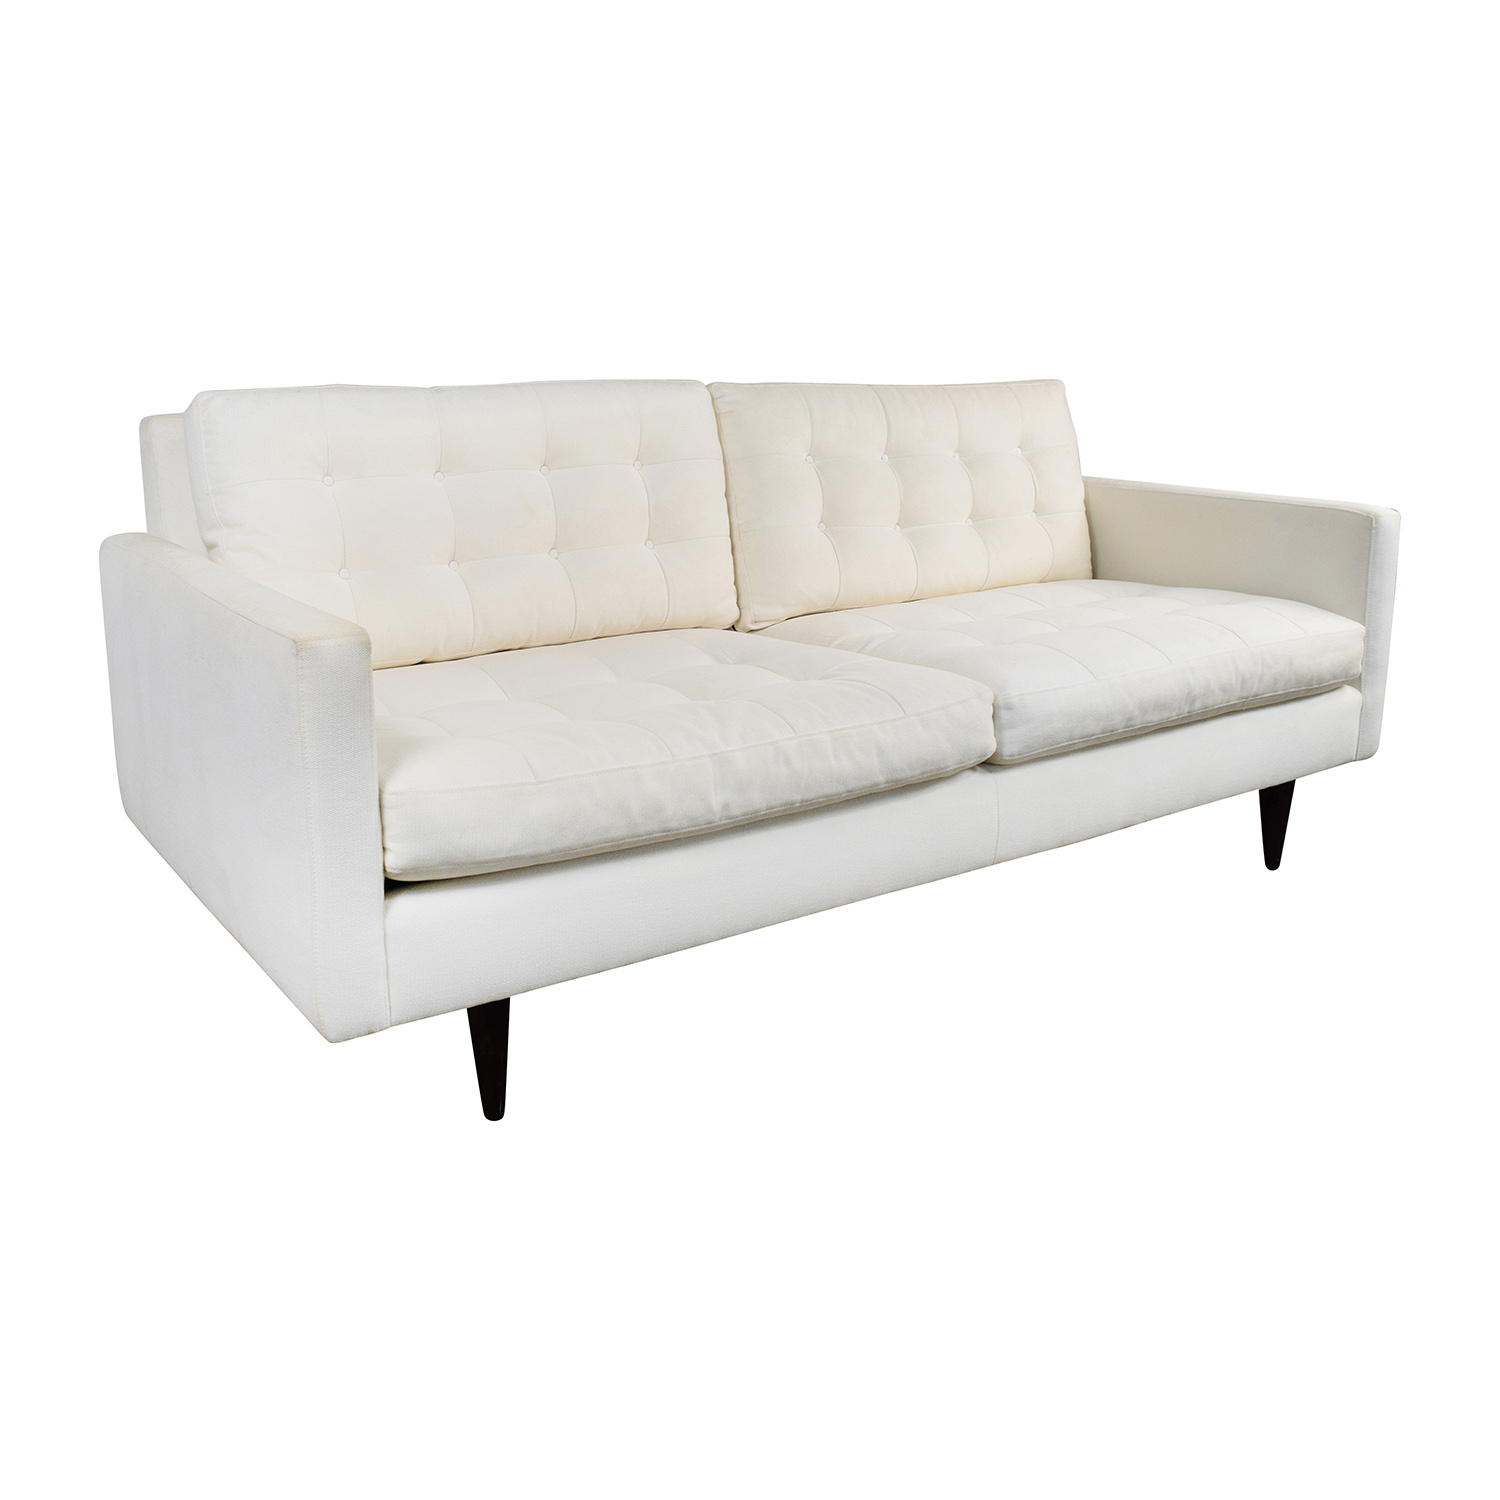 73 off crate and barrel crate barrel white twill for Classic sofa